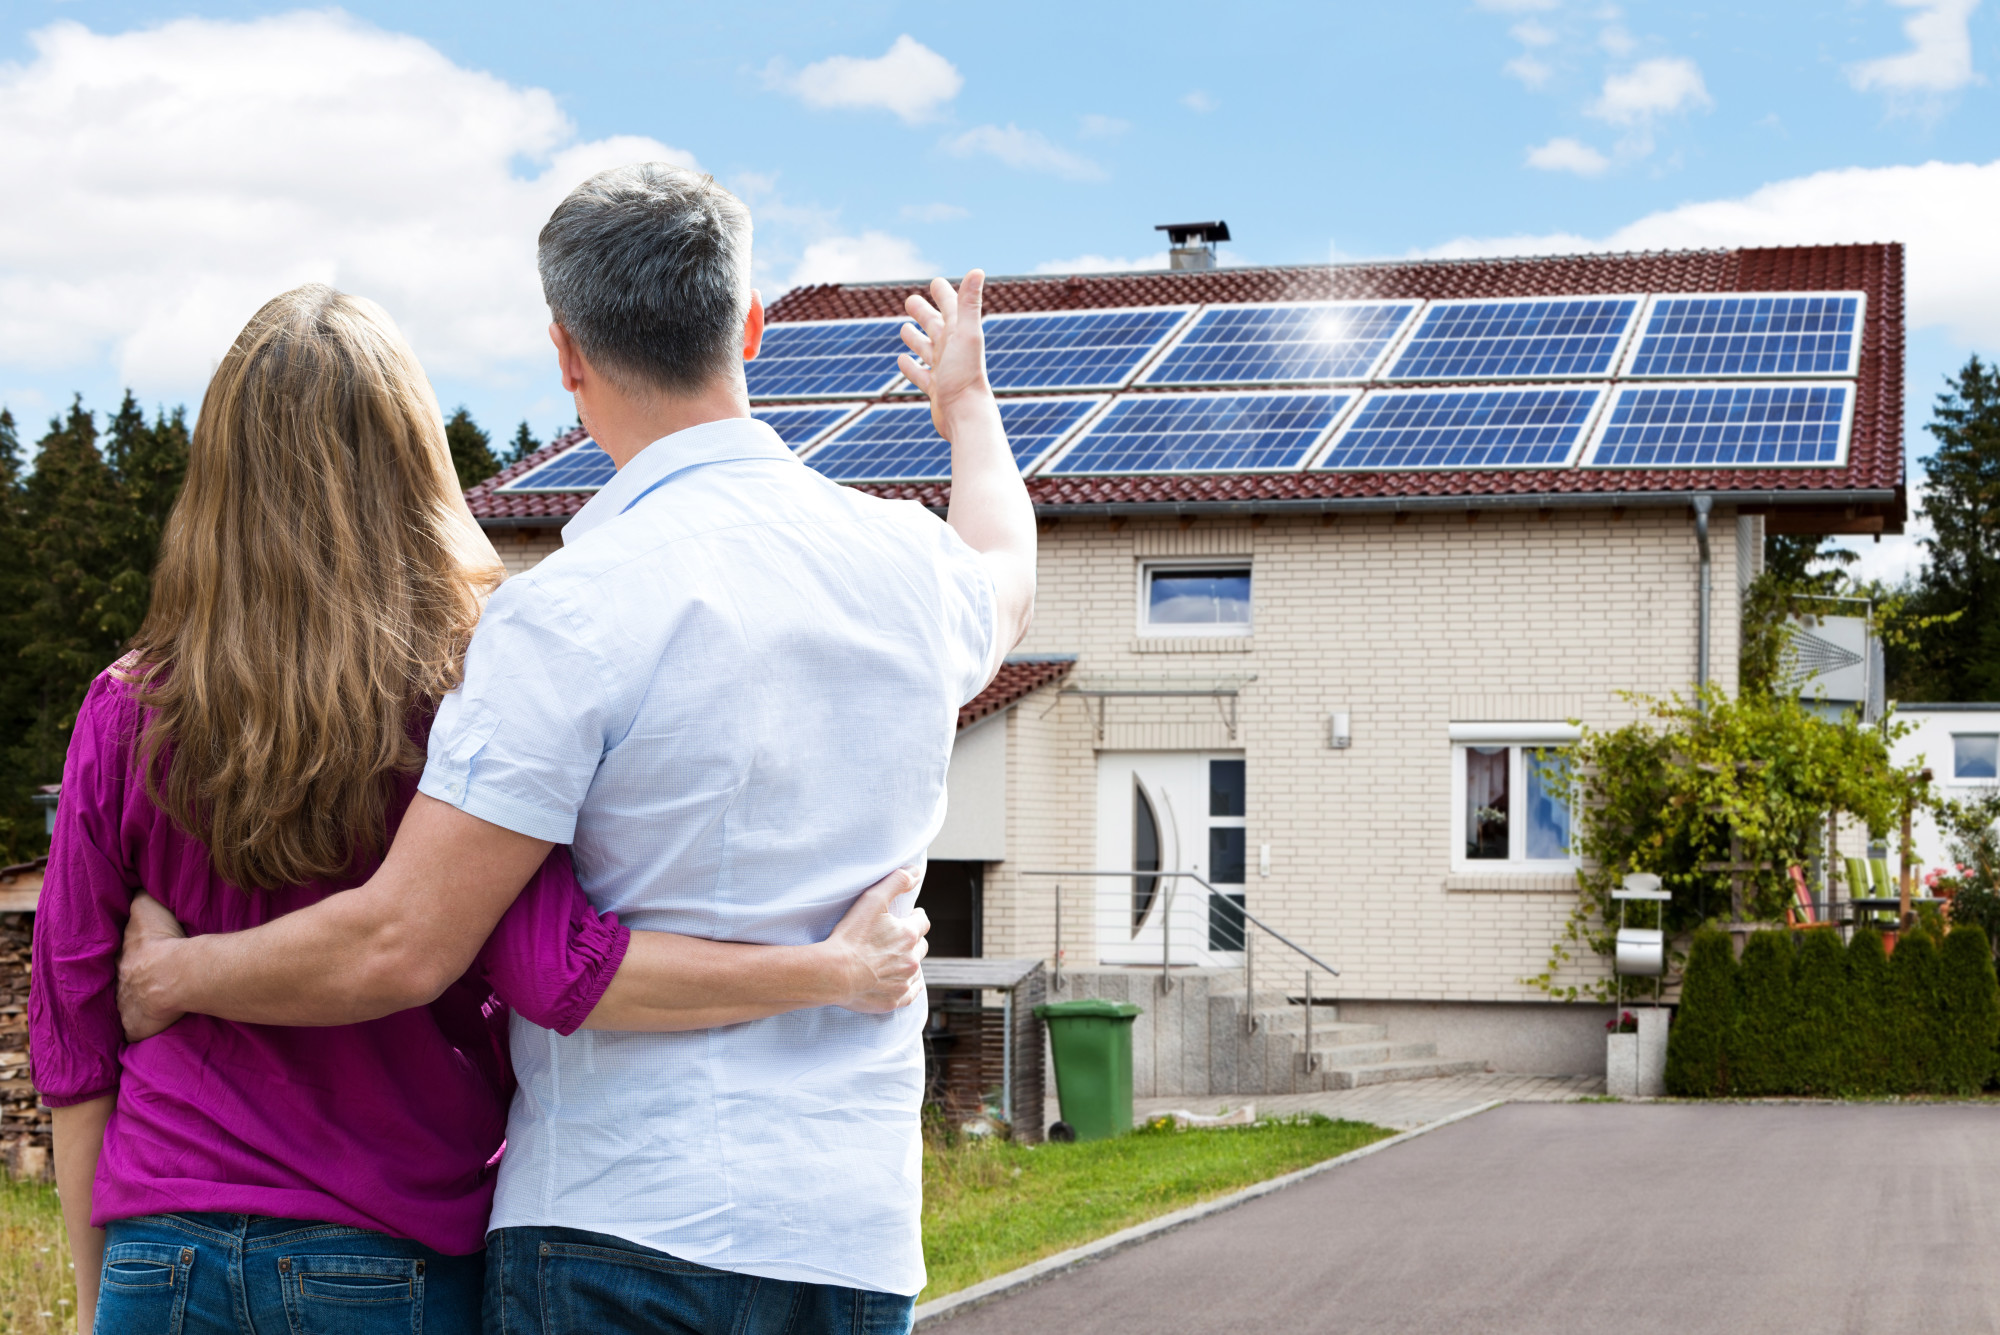 5 Reasons You Should Consider Residential Solar Energy